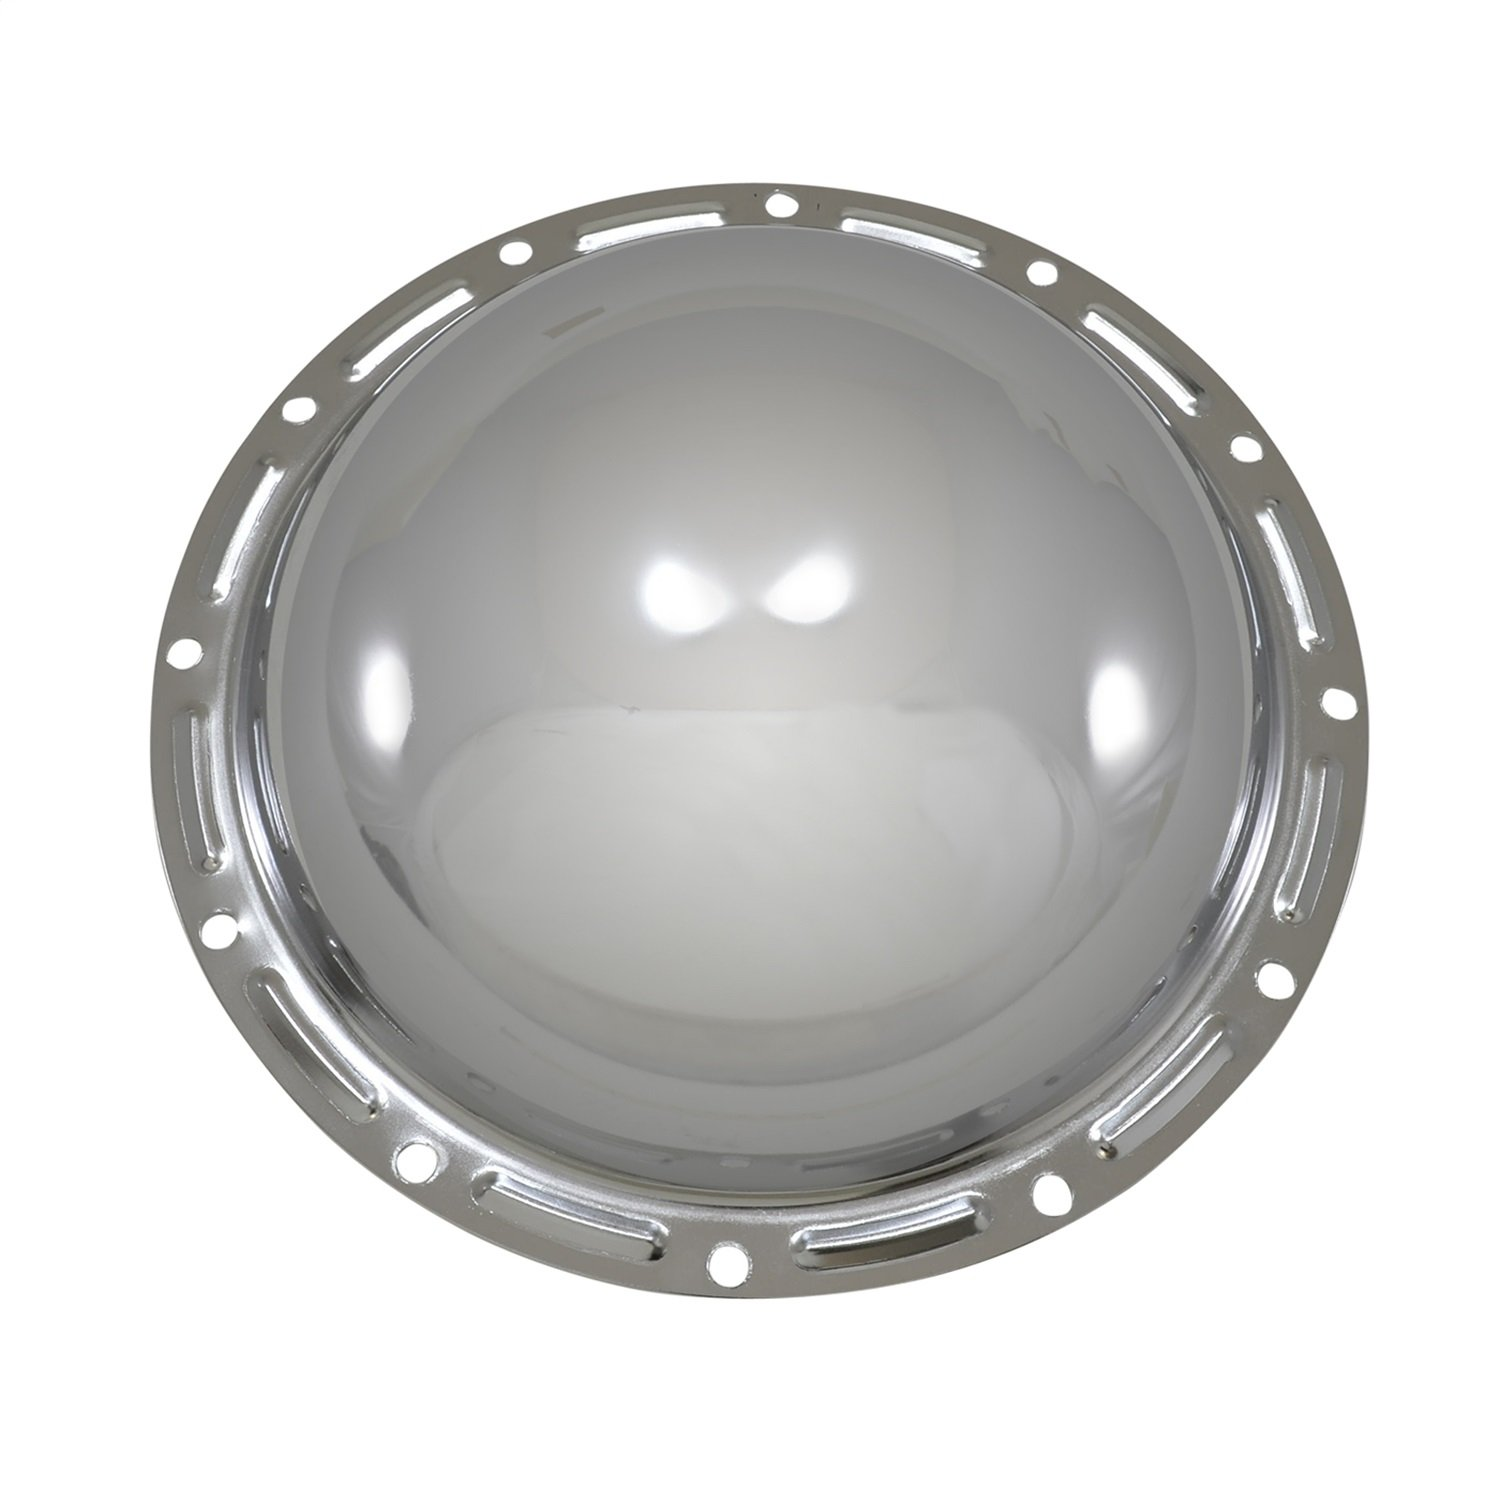 Yukon (YP C1-M20) Chrome Cover for AMC Model 20 Differential Yukon Gear